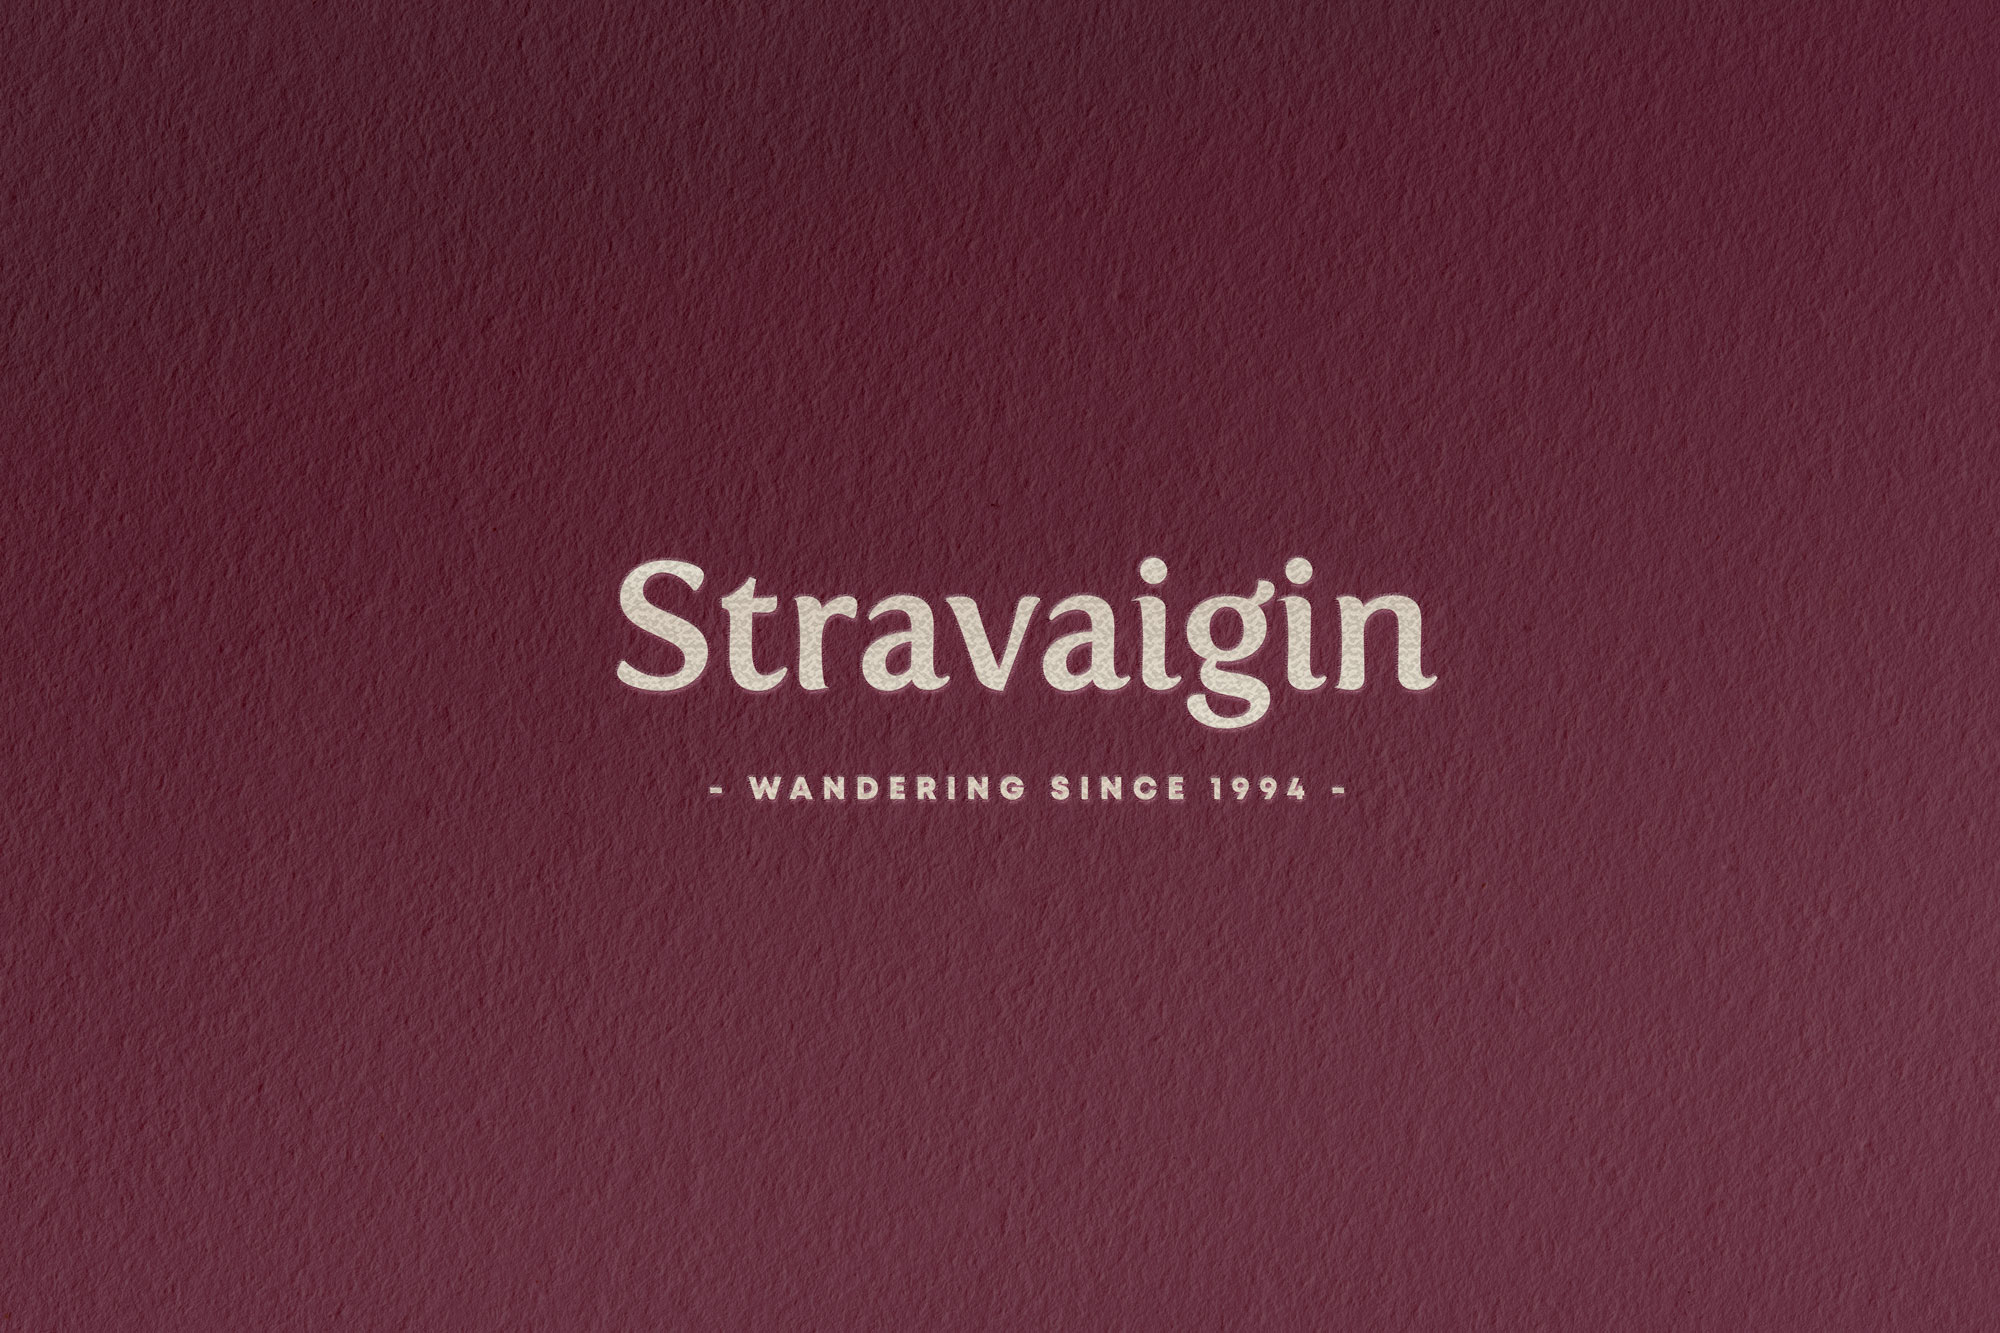 Stravaigin Branding Food Photography Maguires